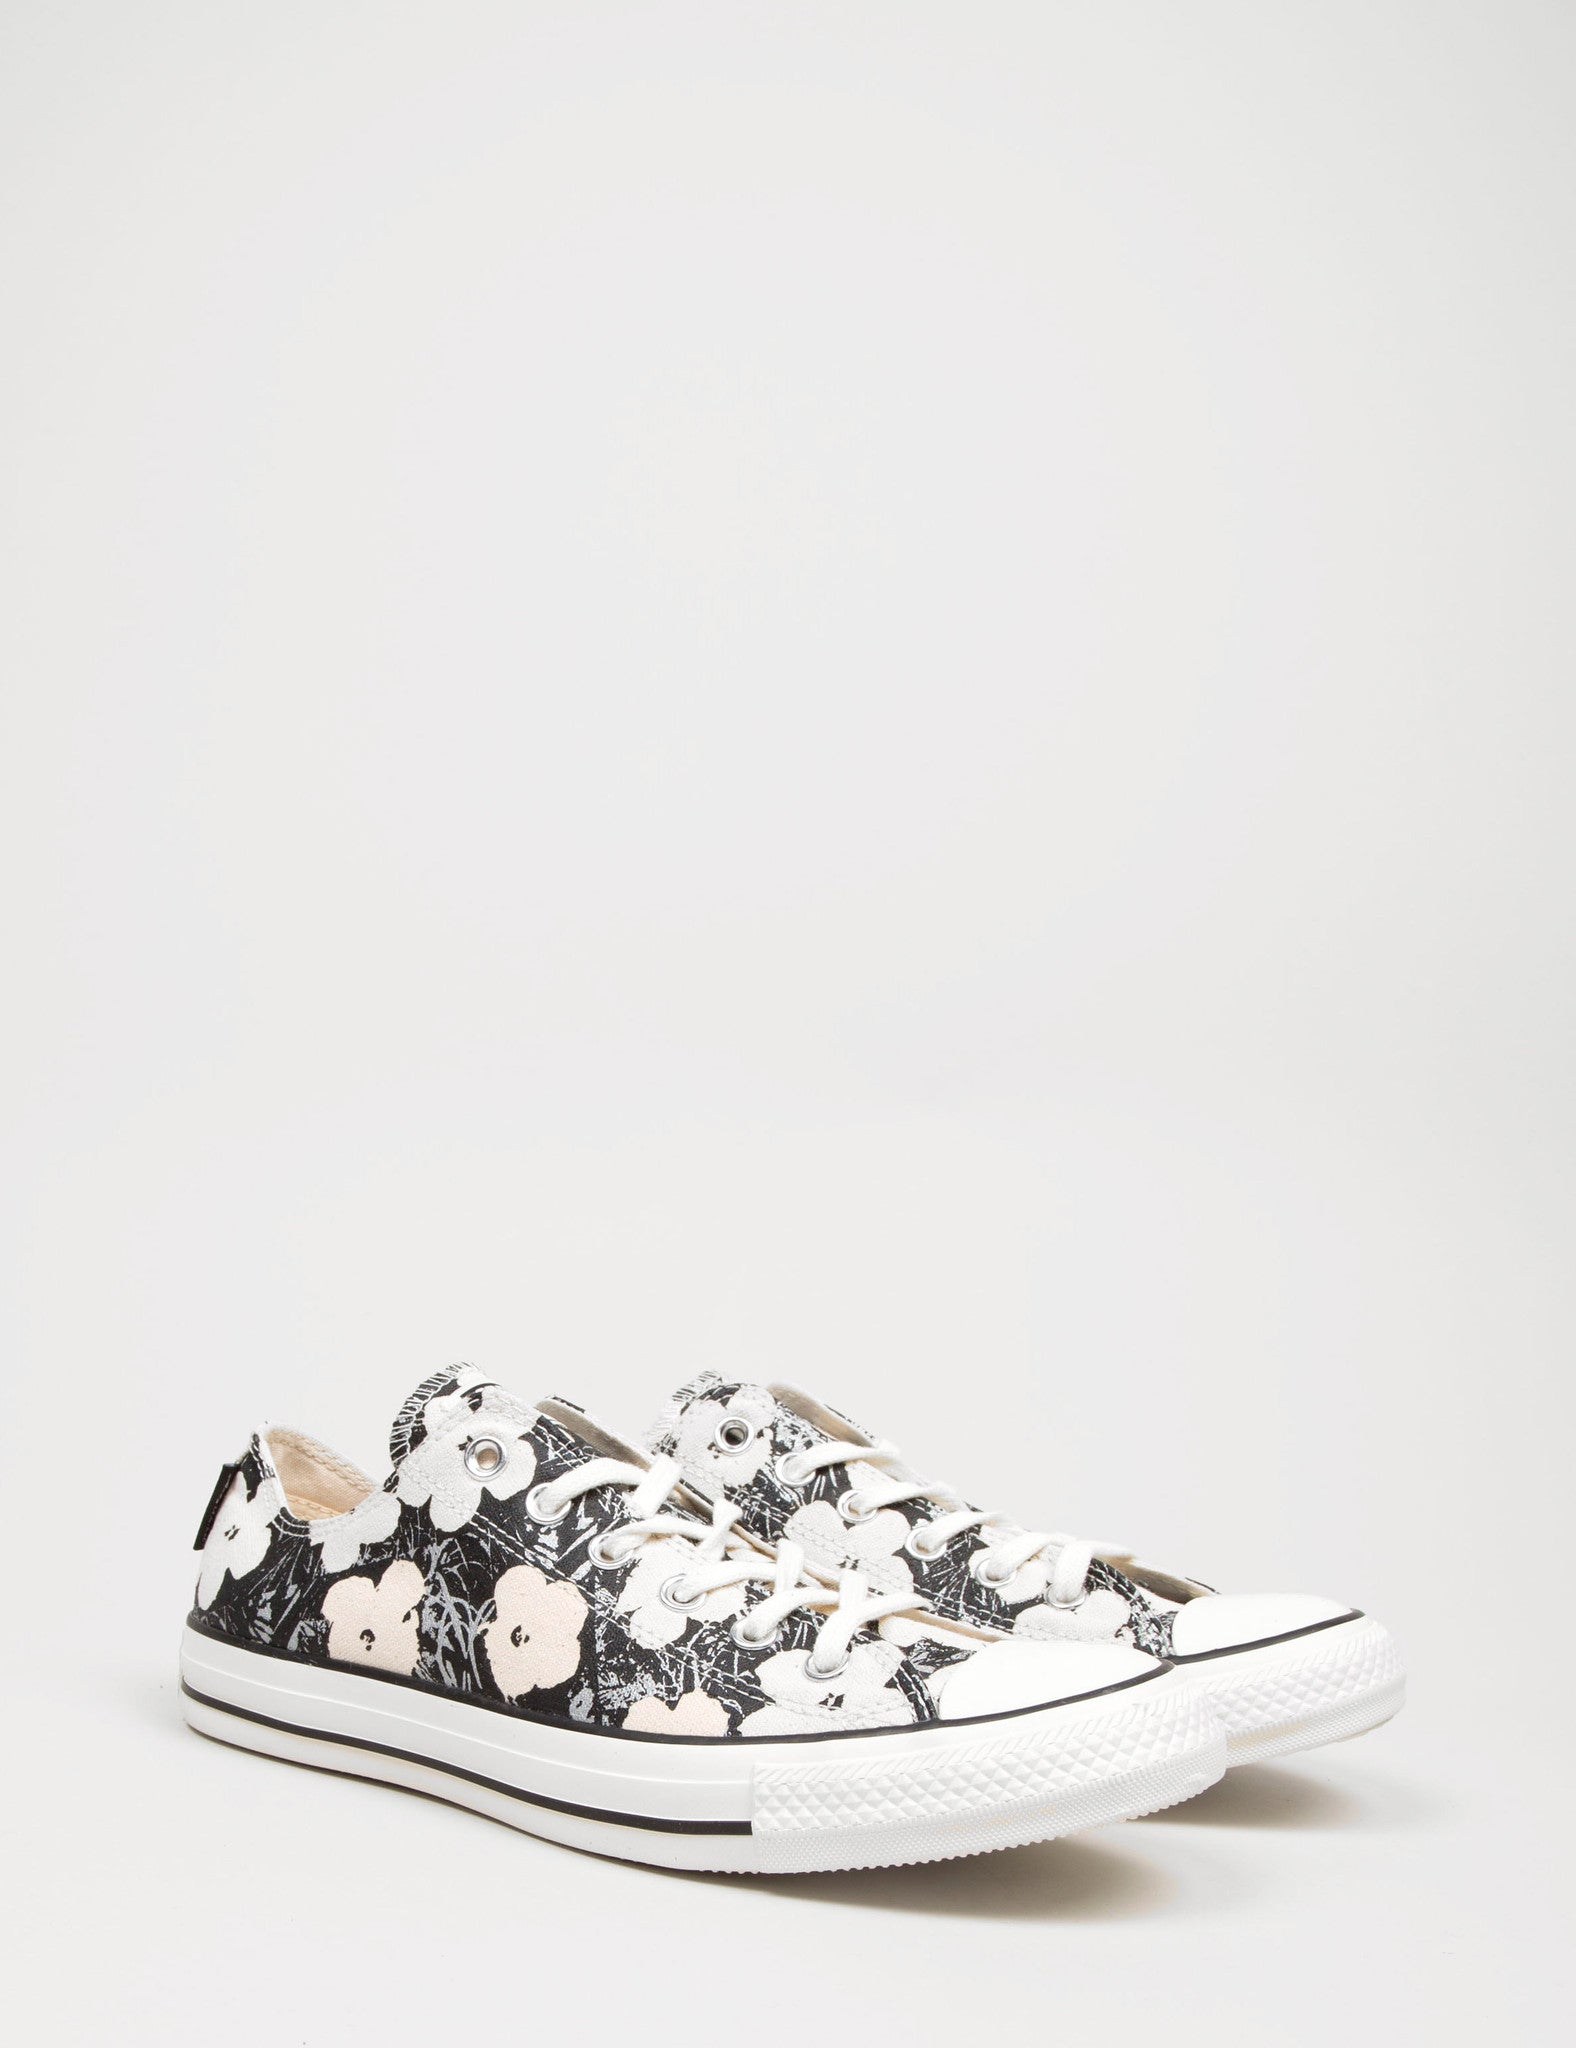 Converse All Star Hi Andy Warhol Floral - Black/Natural